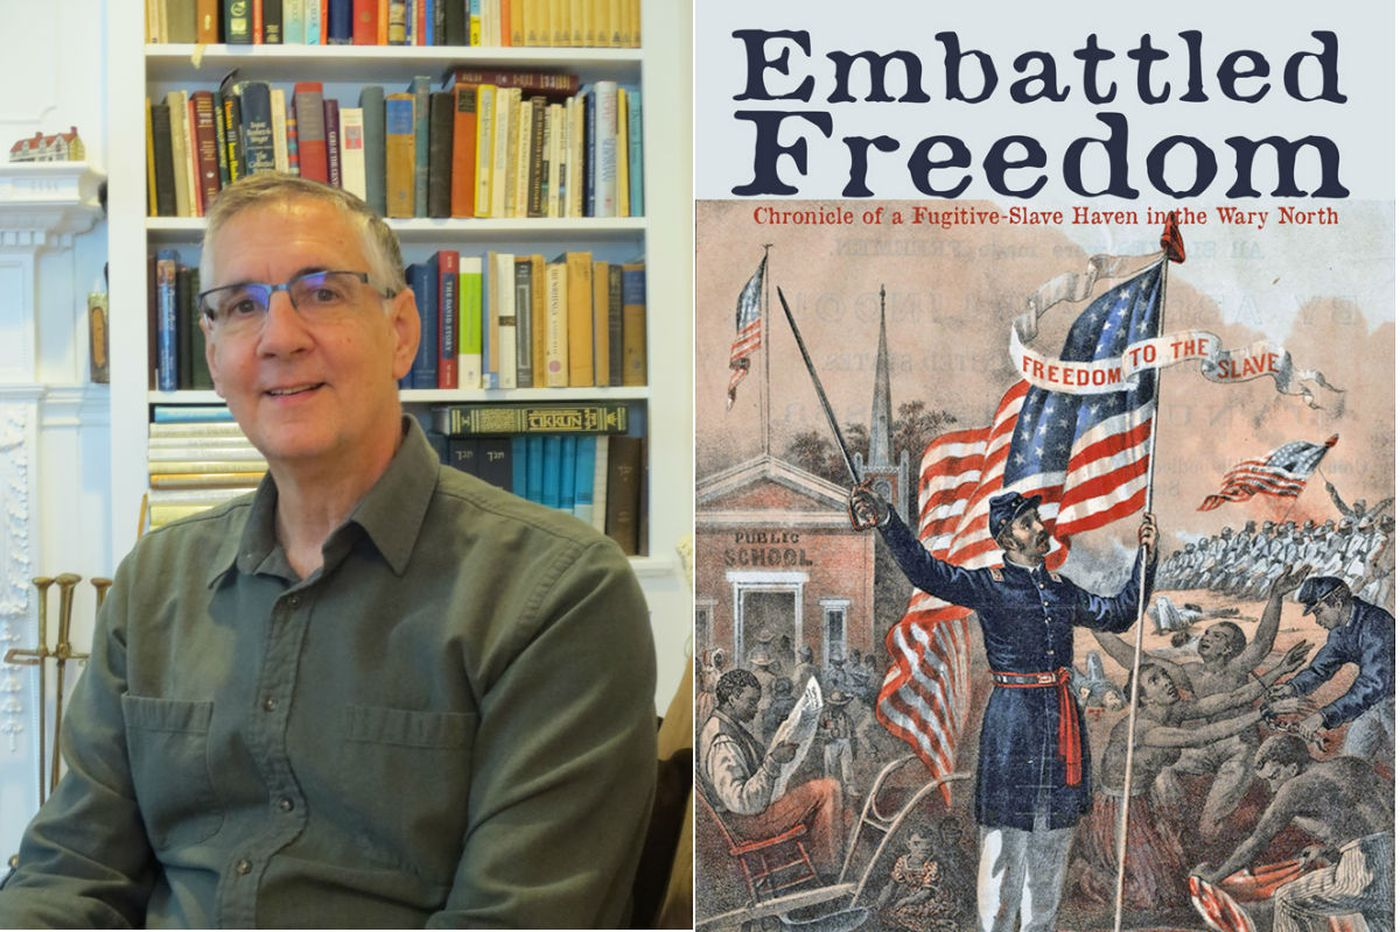 Jim Remsen's 'Embattled Freedom': A Pennsylvania hamlet's role in the Underground Railroad and the Civil War